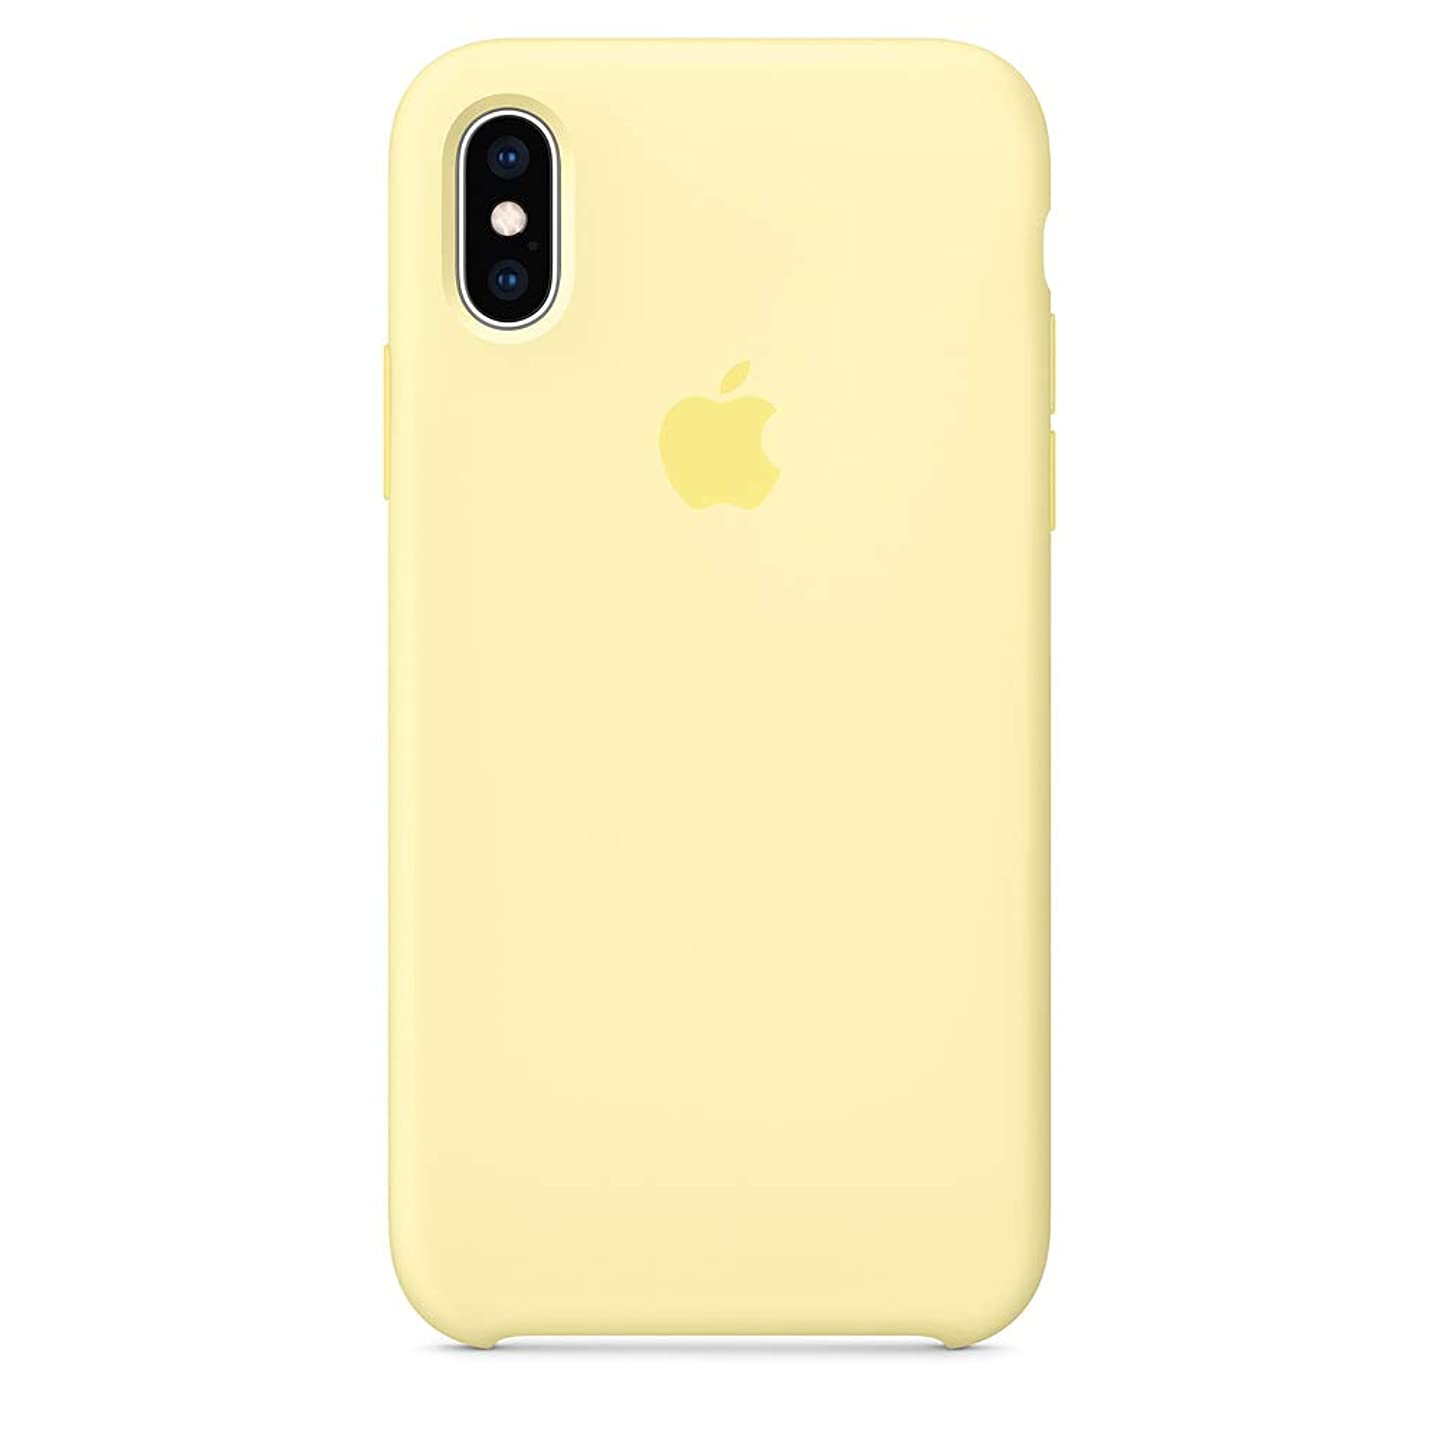 Dawsofl Soft Silicone Case Cover for Apple iPhone Xs Max 2018 (6.5inch) Boxed- Retail Packaging (Mellow Yellow)